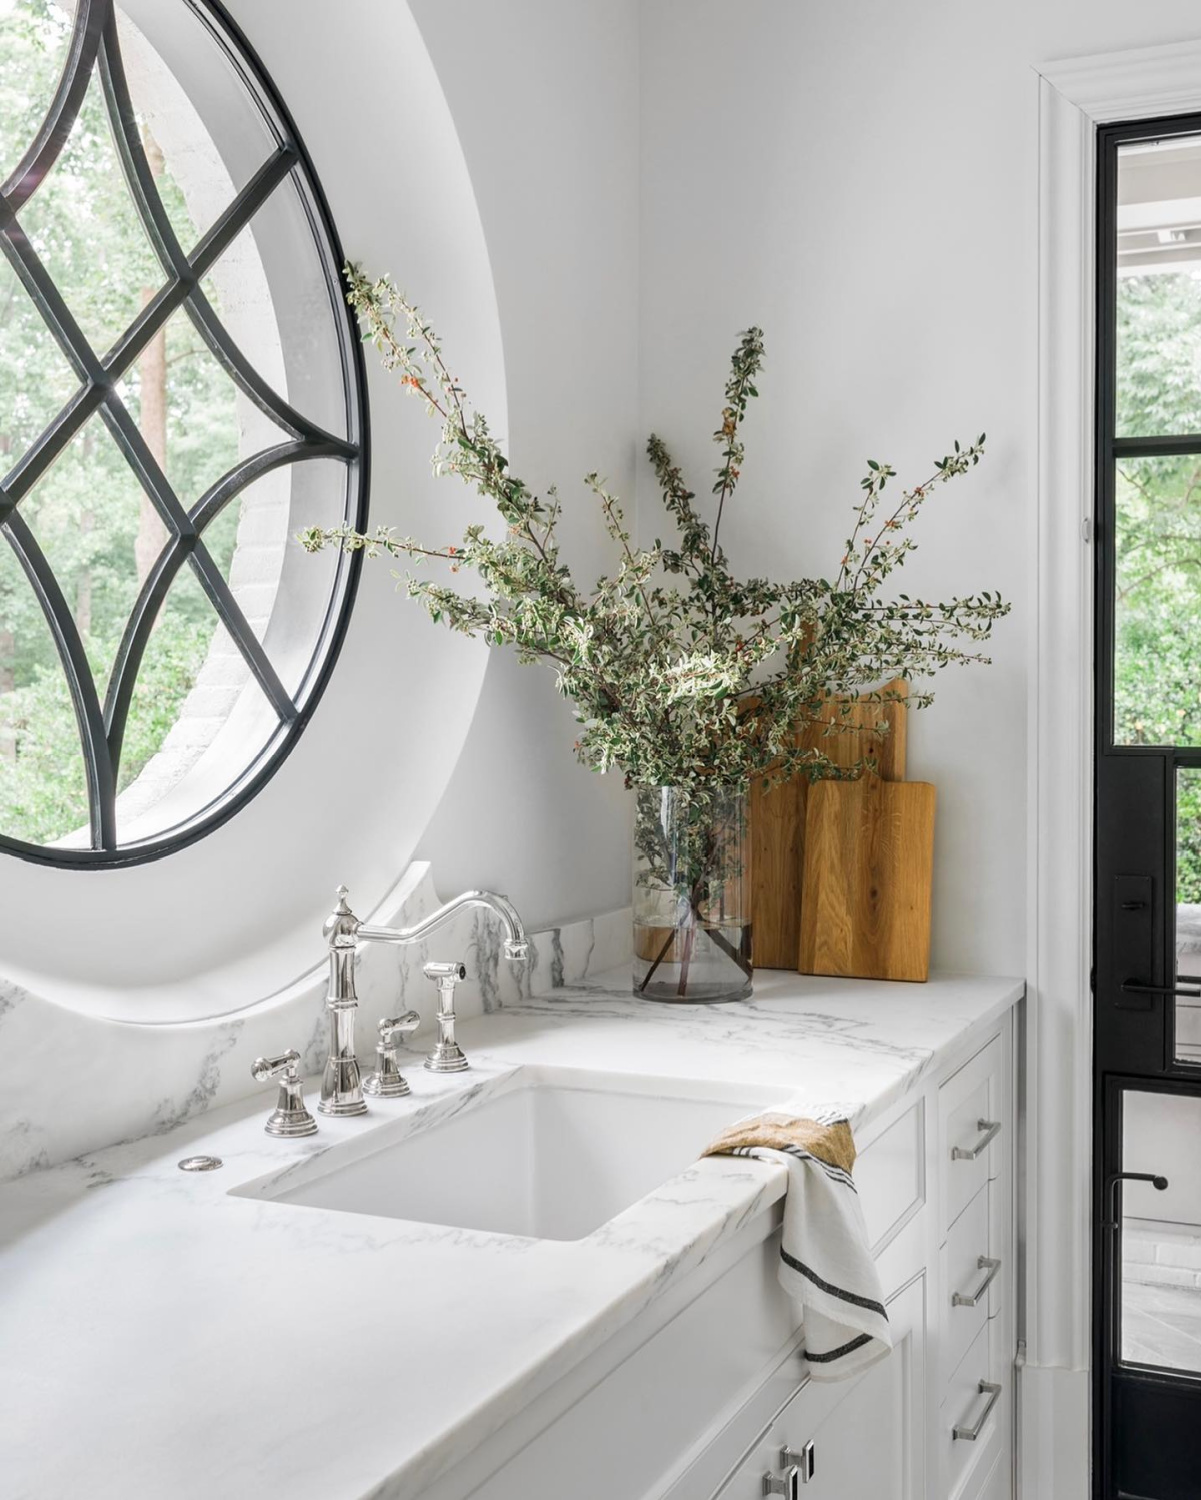 A gloriously elegant white kitchen with iron door and decorative window - Ladisic Fine Homes and Sherry Hart. #whitekitchens #elegantkitchens #irondoor #decorativewindow